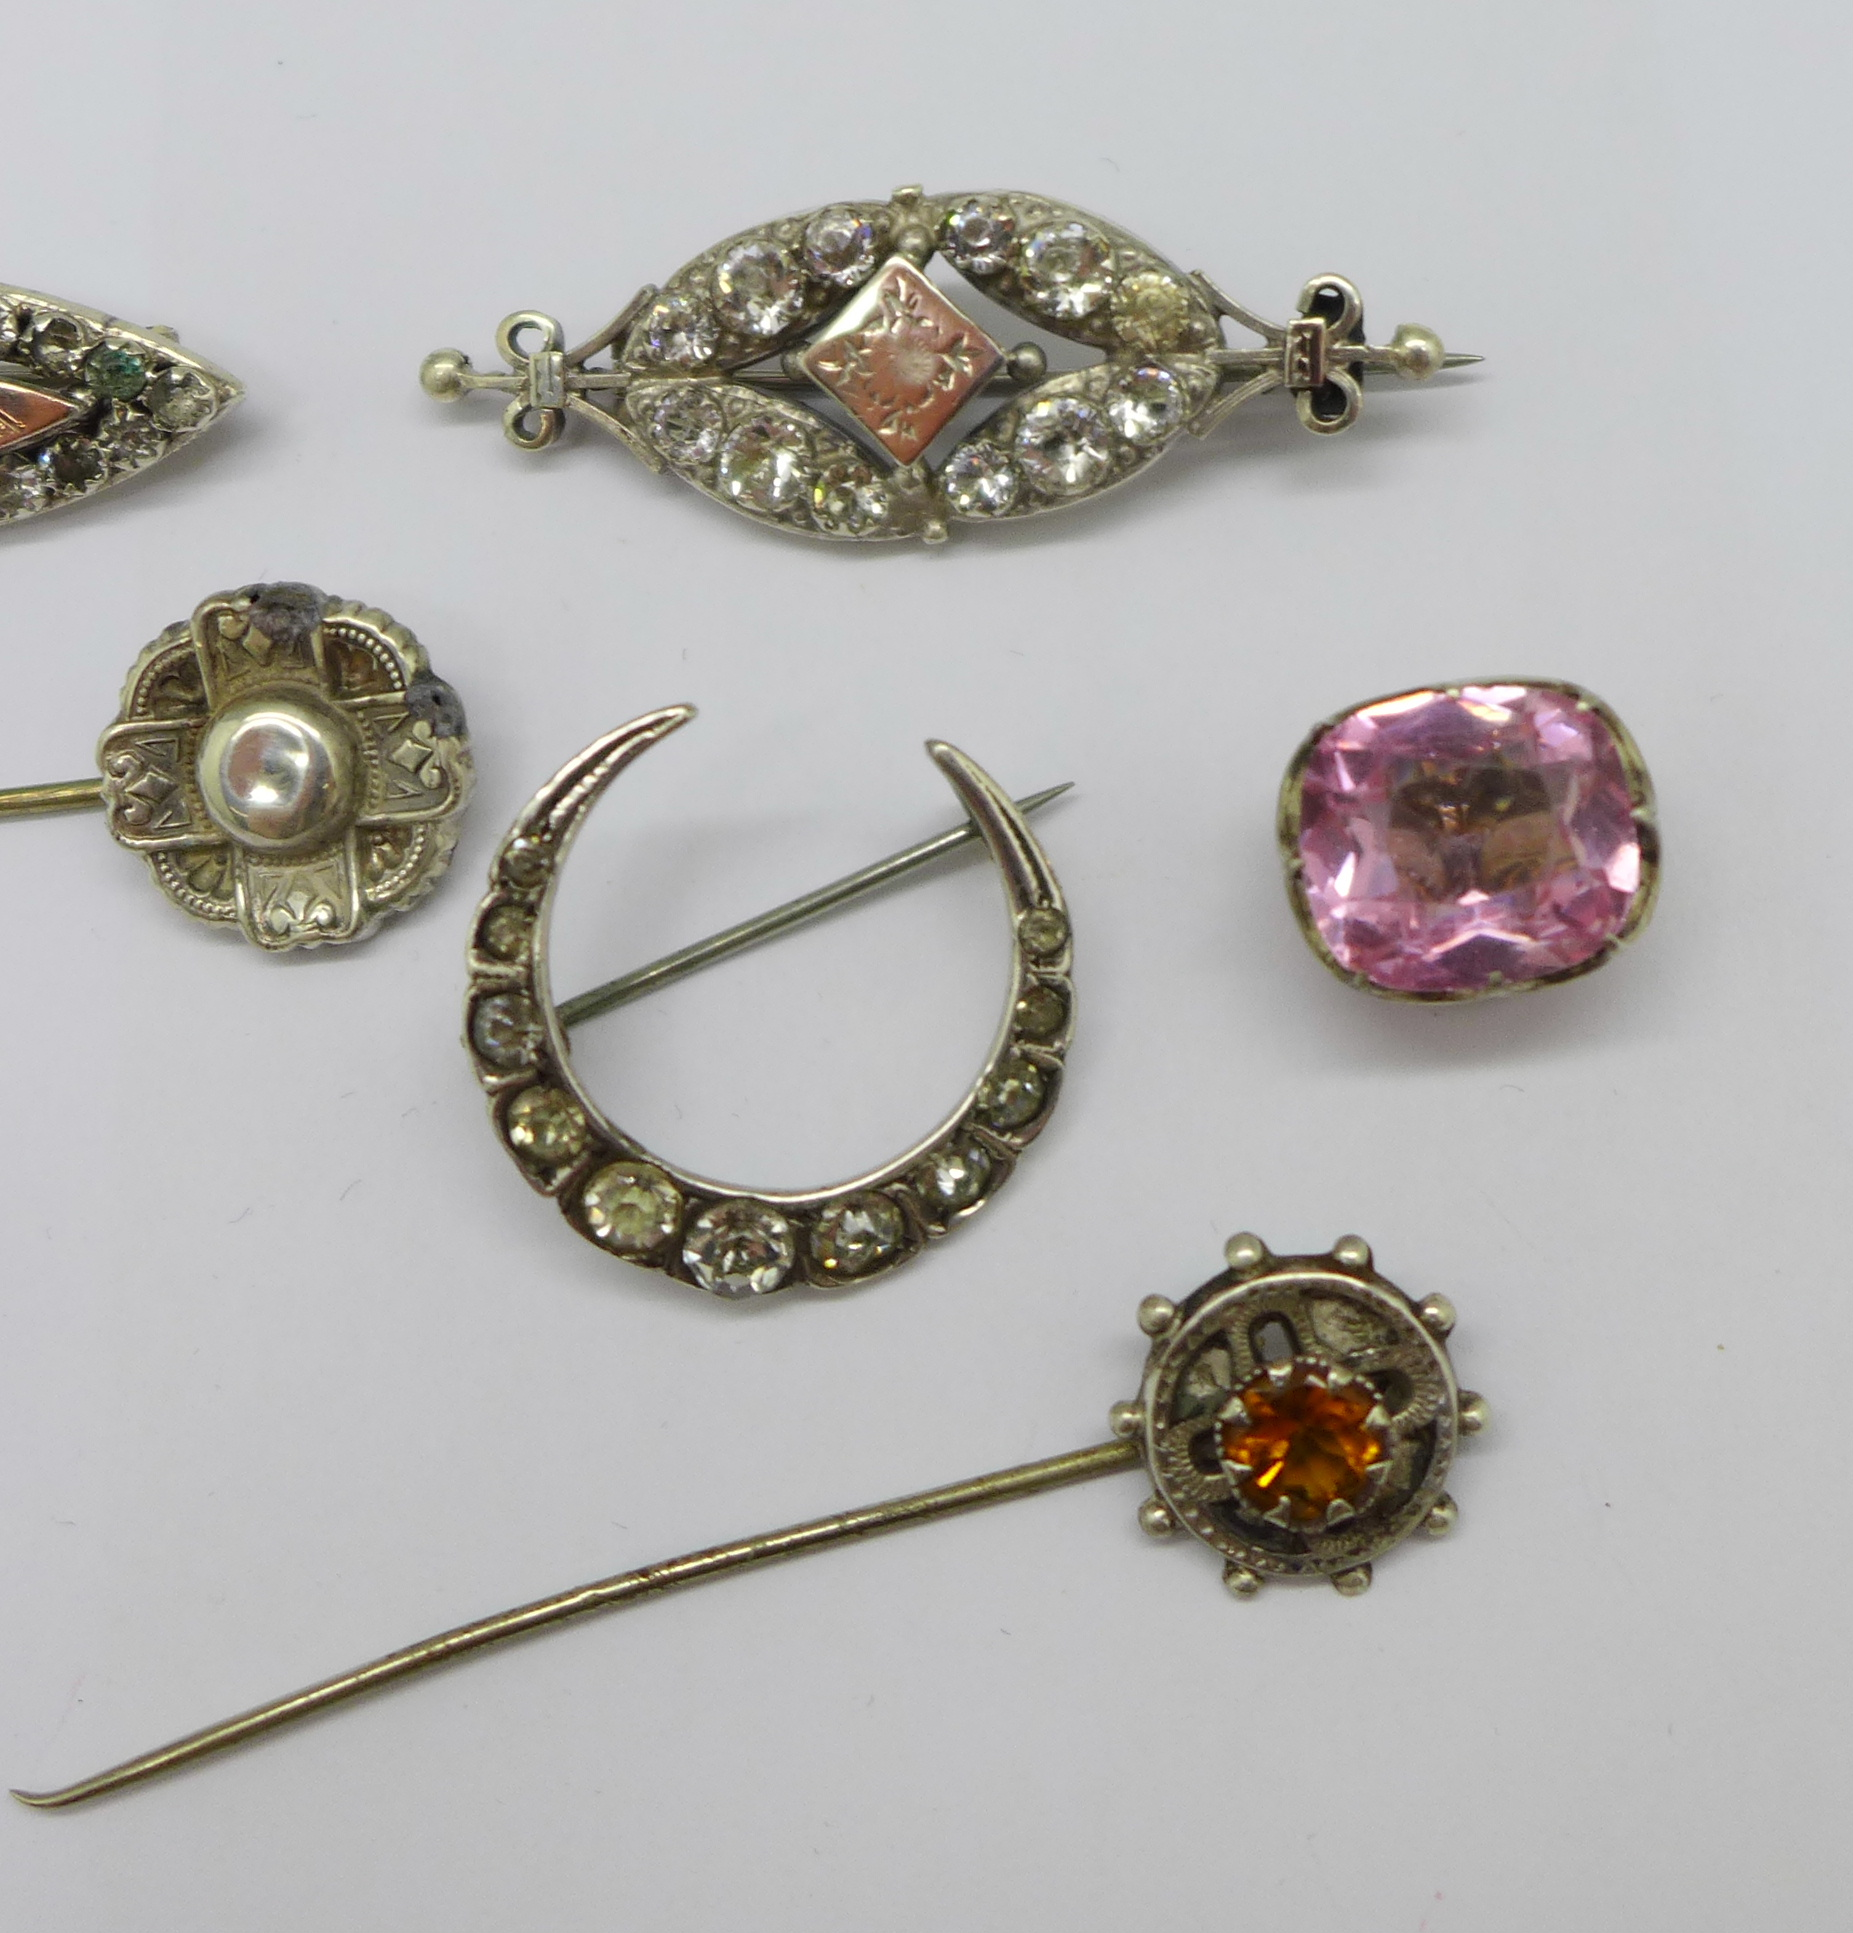 Two hallmarked Victorian silver and gilt fronted brooches, four other brooches, two stick pins and a - Image 3 of 4